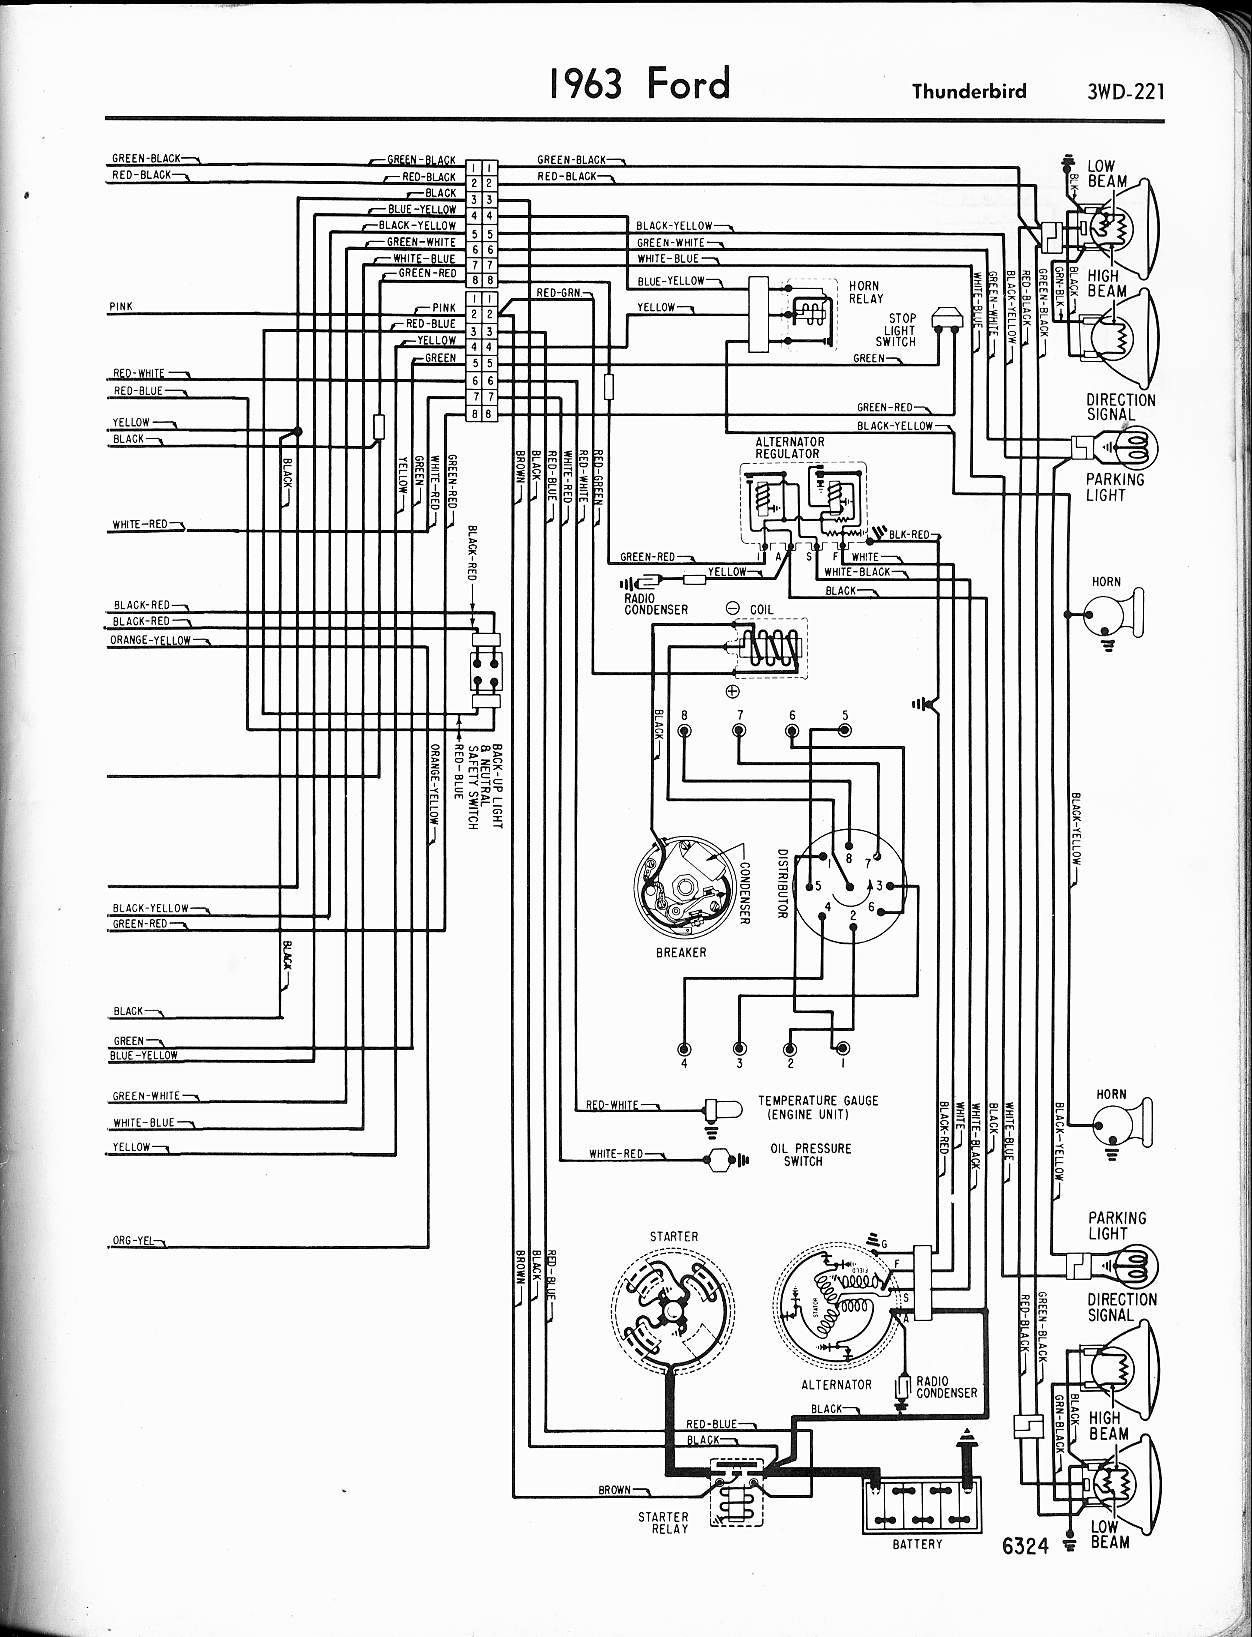 63 thunderbird voltage regulator wiring diagram manual e books 69 mustang starting systems diagram 63 thunderbird voltage regulator wiring diagram wiring diagram63 thunderbird voltage regulator wiring diagram wiring diagram library1963